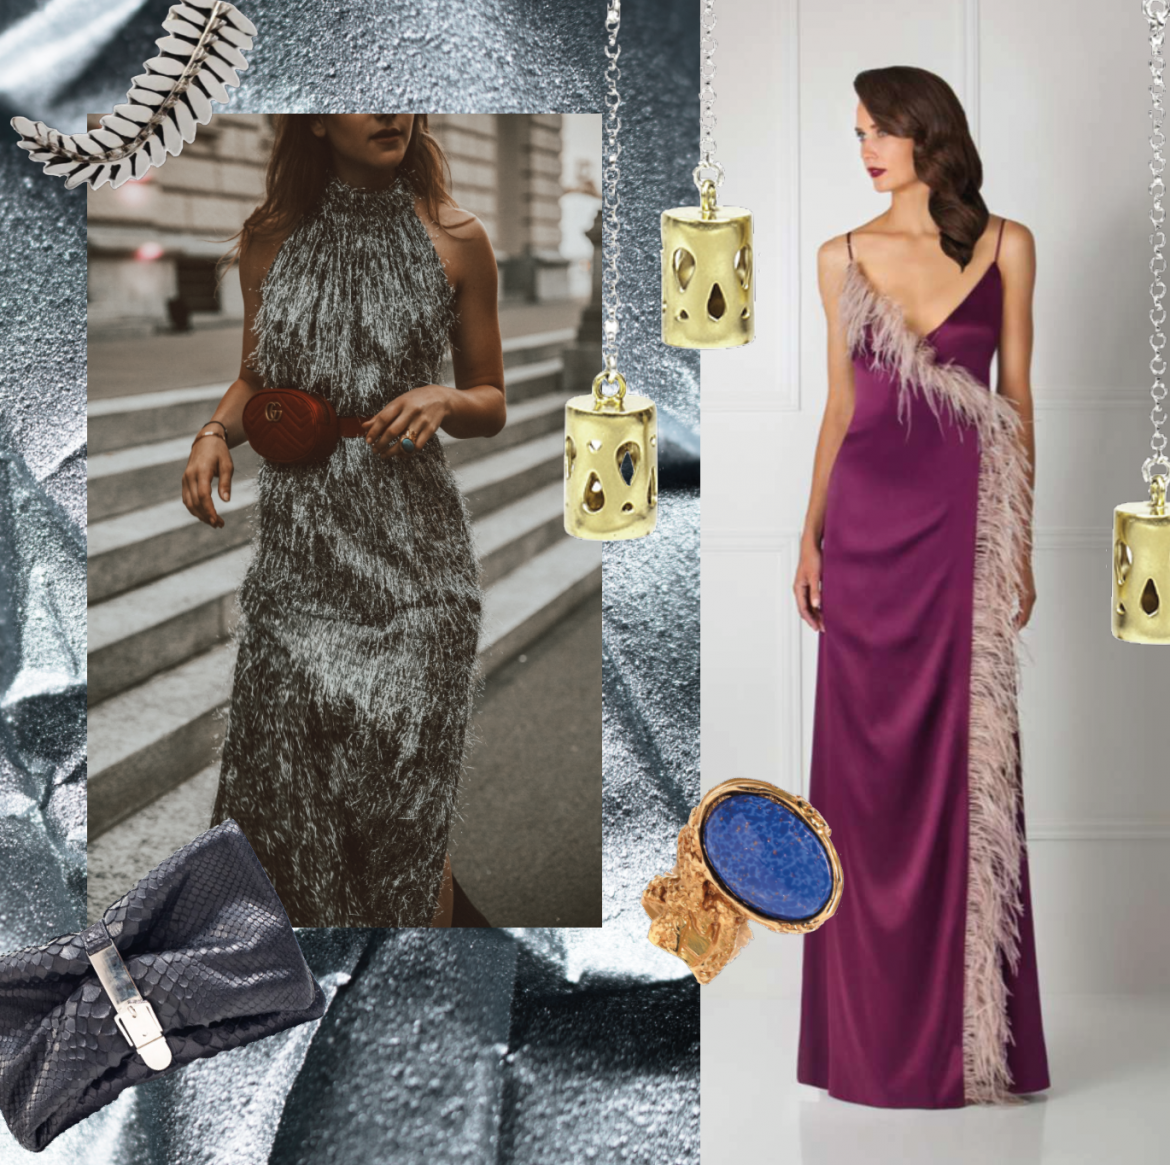 abendkleid_roterteppich_event_gala_outfit